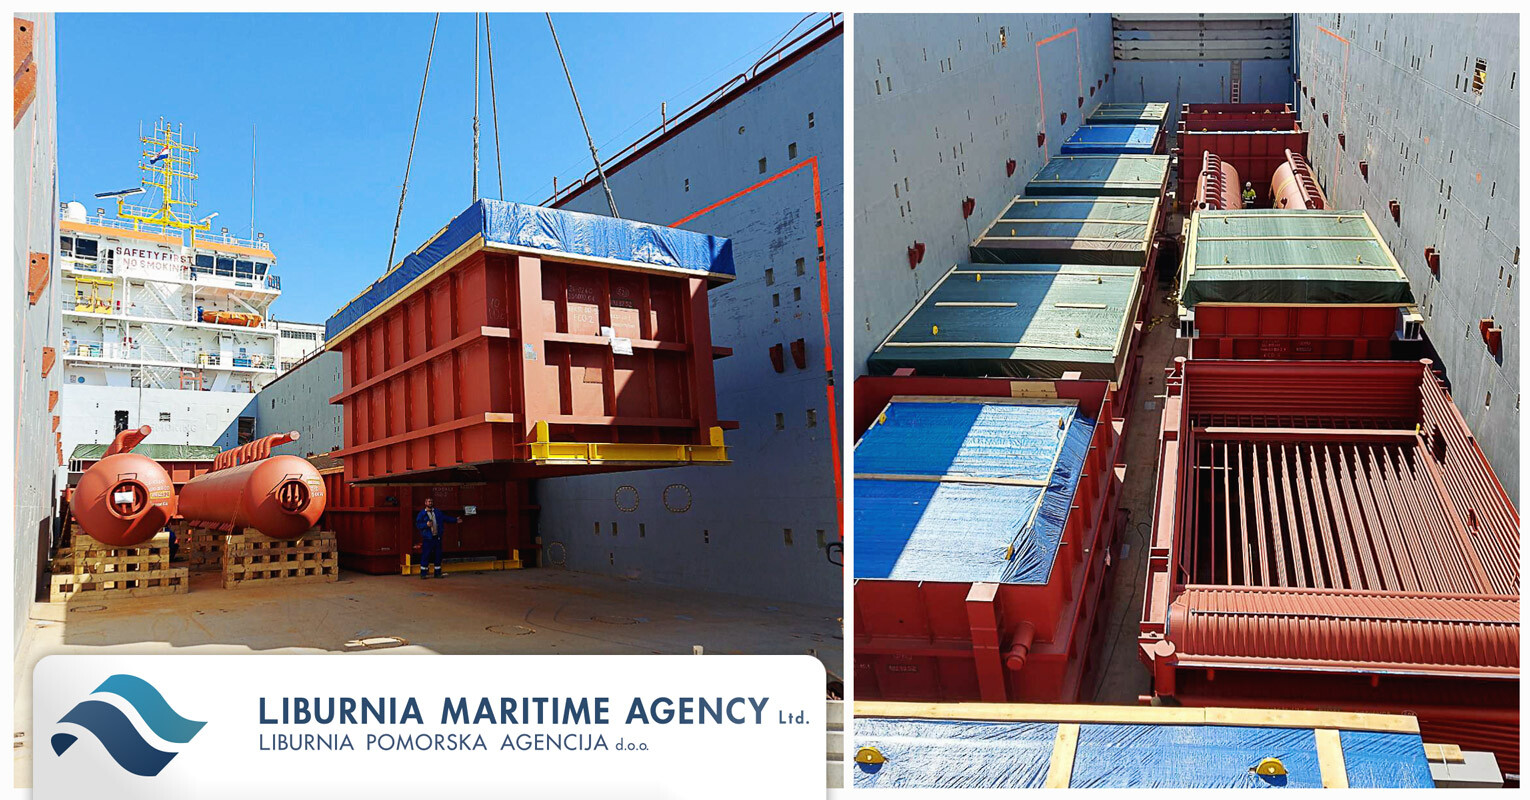 Despite Corona Issues Work Has to Go On - Liburnia Loaded the 2nd Lot of a Big Project to UK